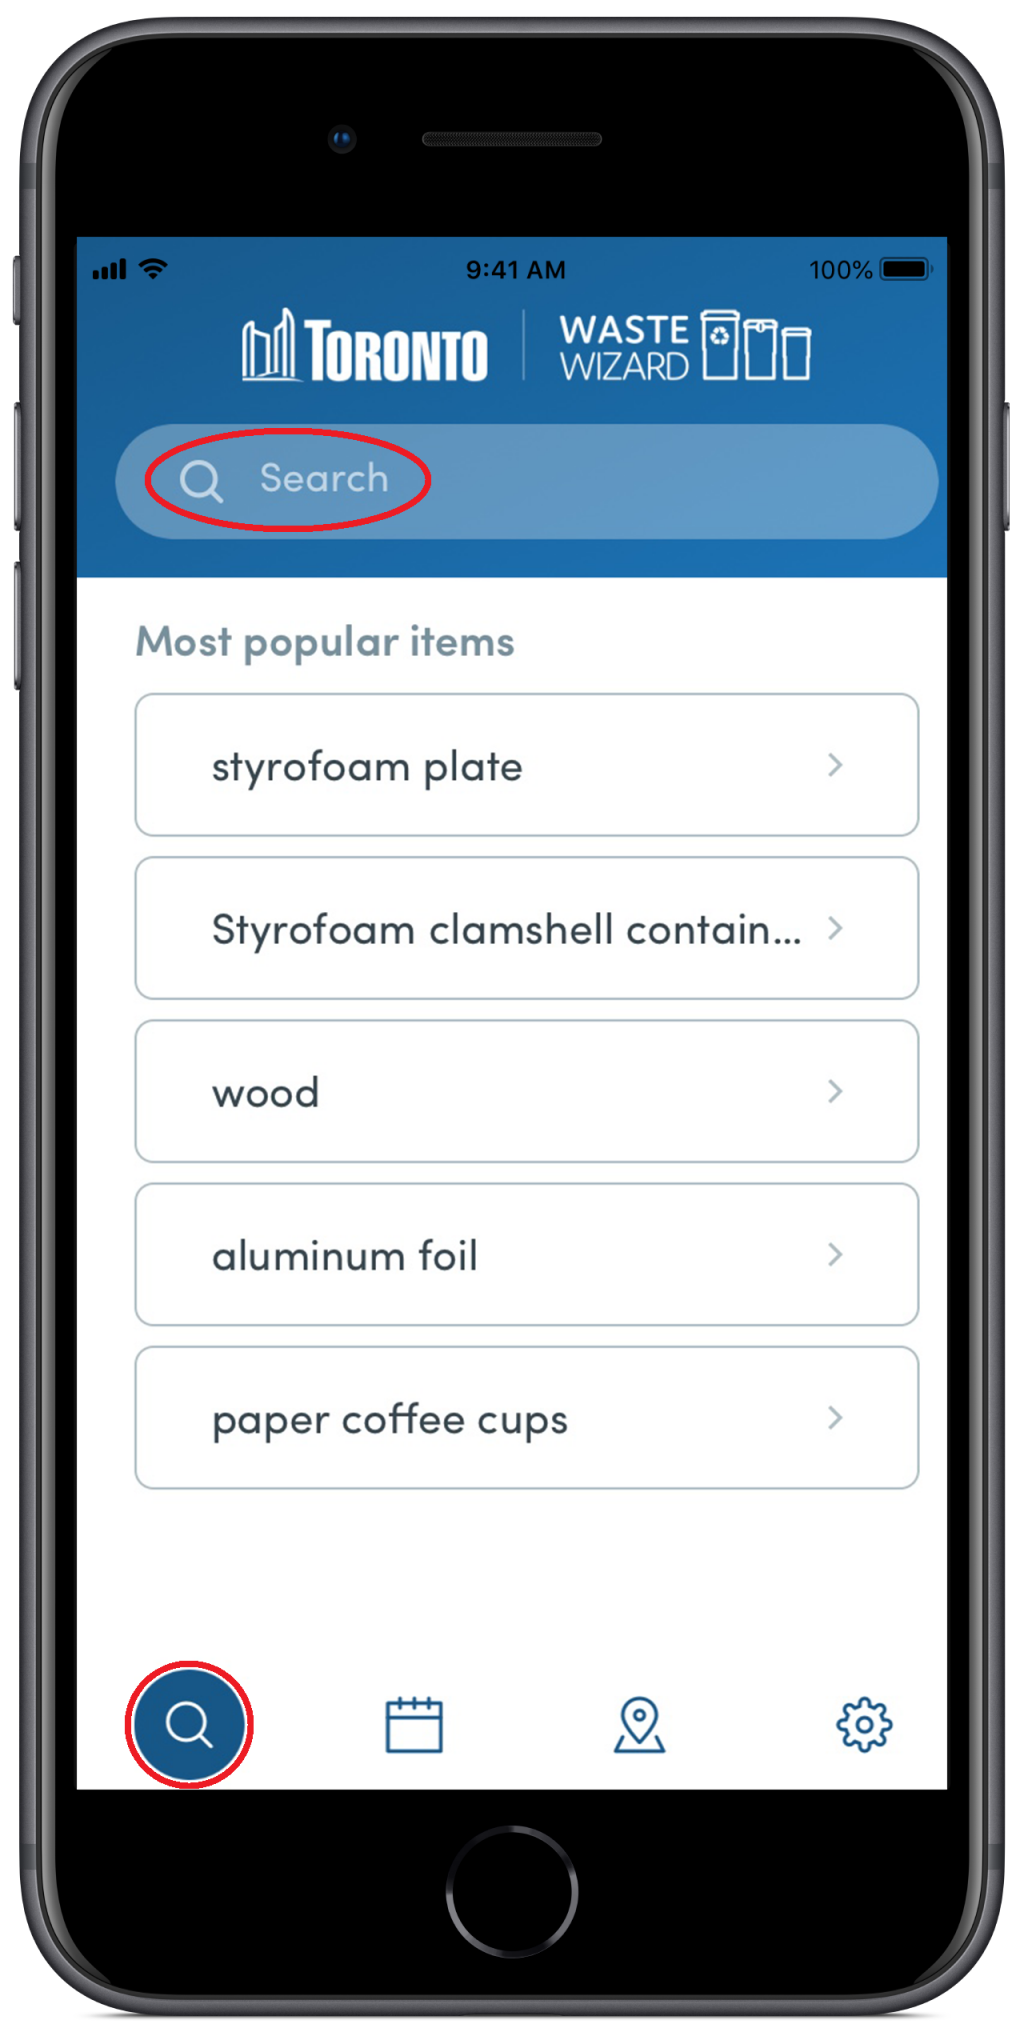 Waste Wizard app page displaying the most popular items and a search field. Red circles highlight the search field and icon that corresponds to the Waste Wizard section of the app.